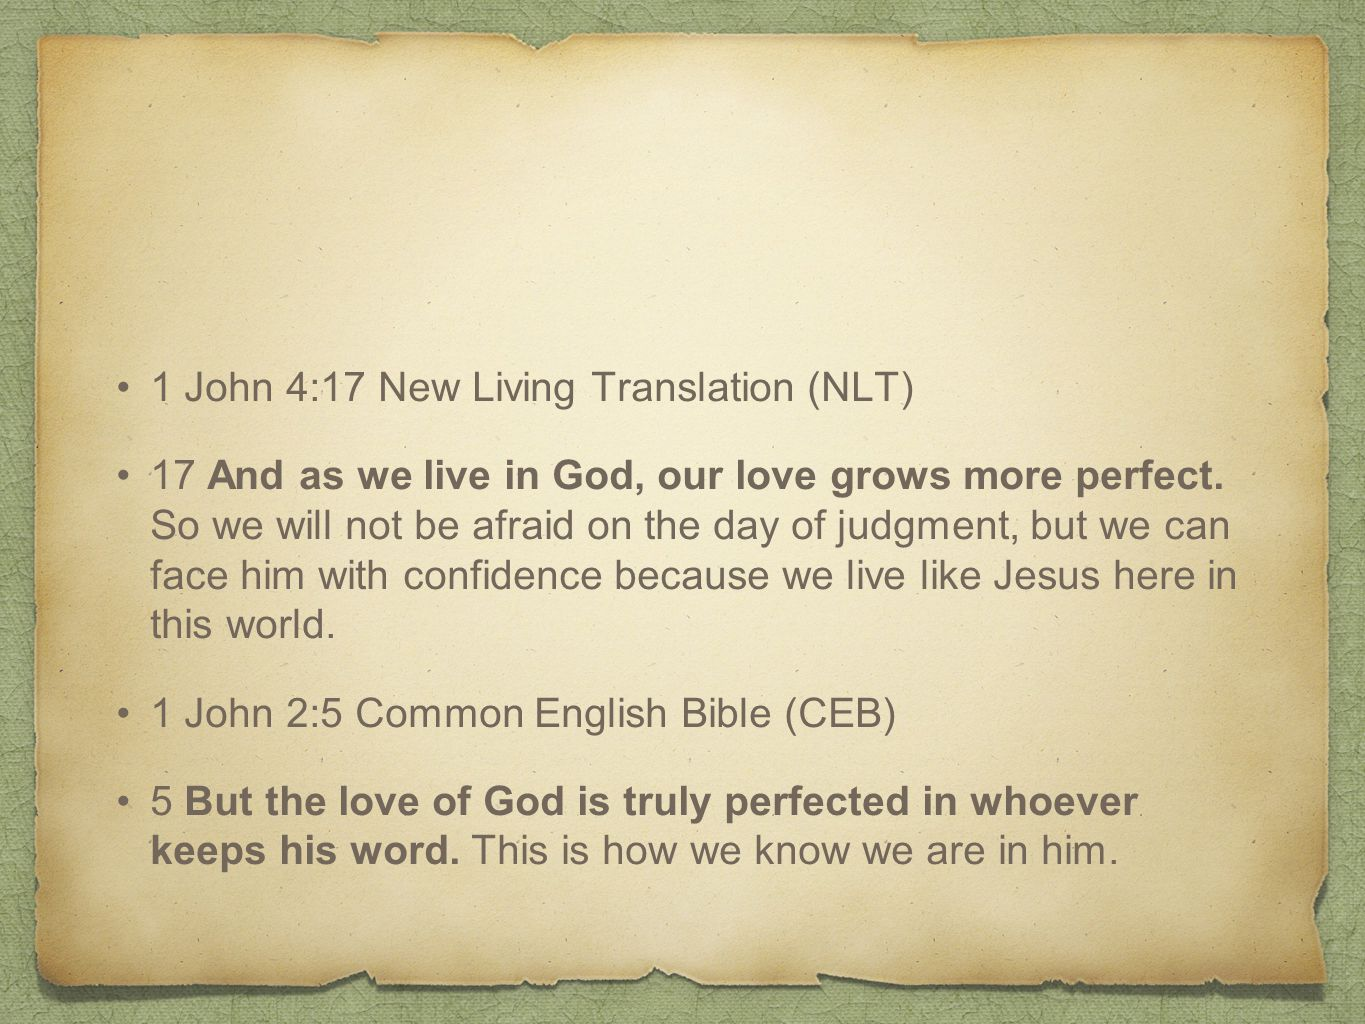 1 John 4:17 New Living Translation (NLT) 17 And as we live in God, our love grows more perfect.